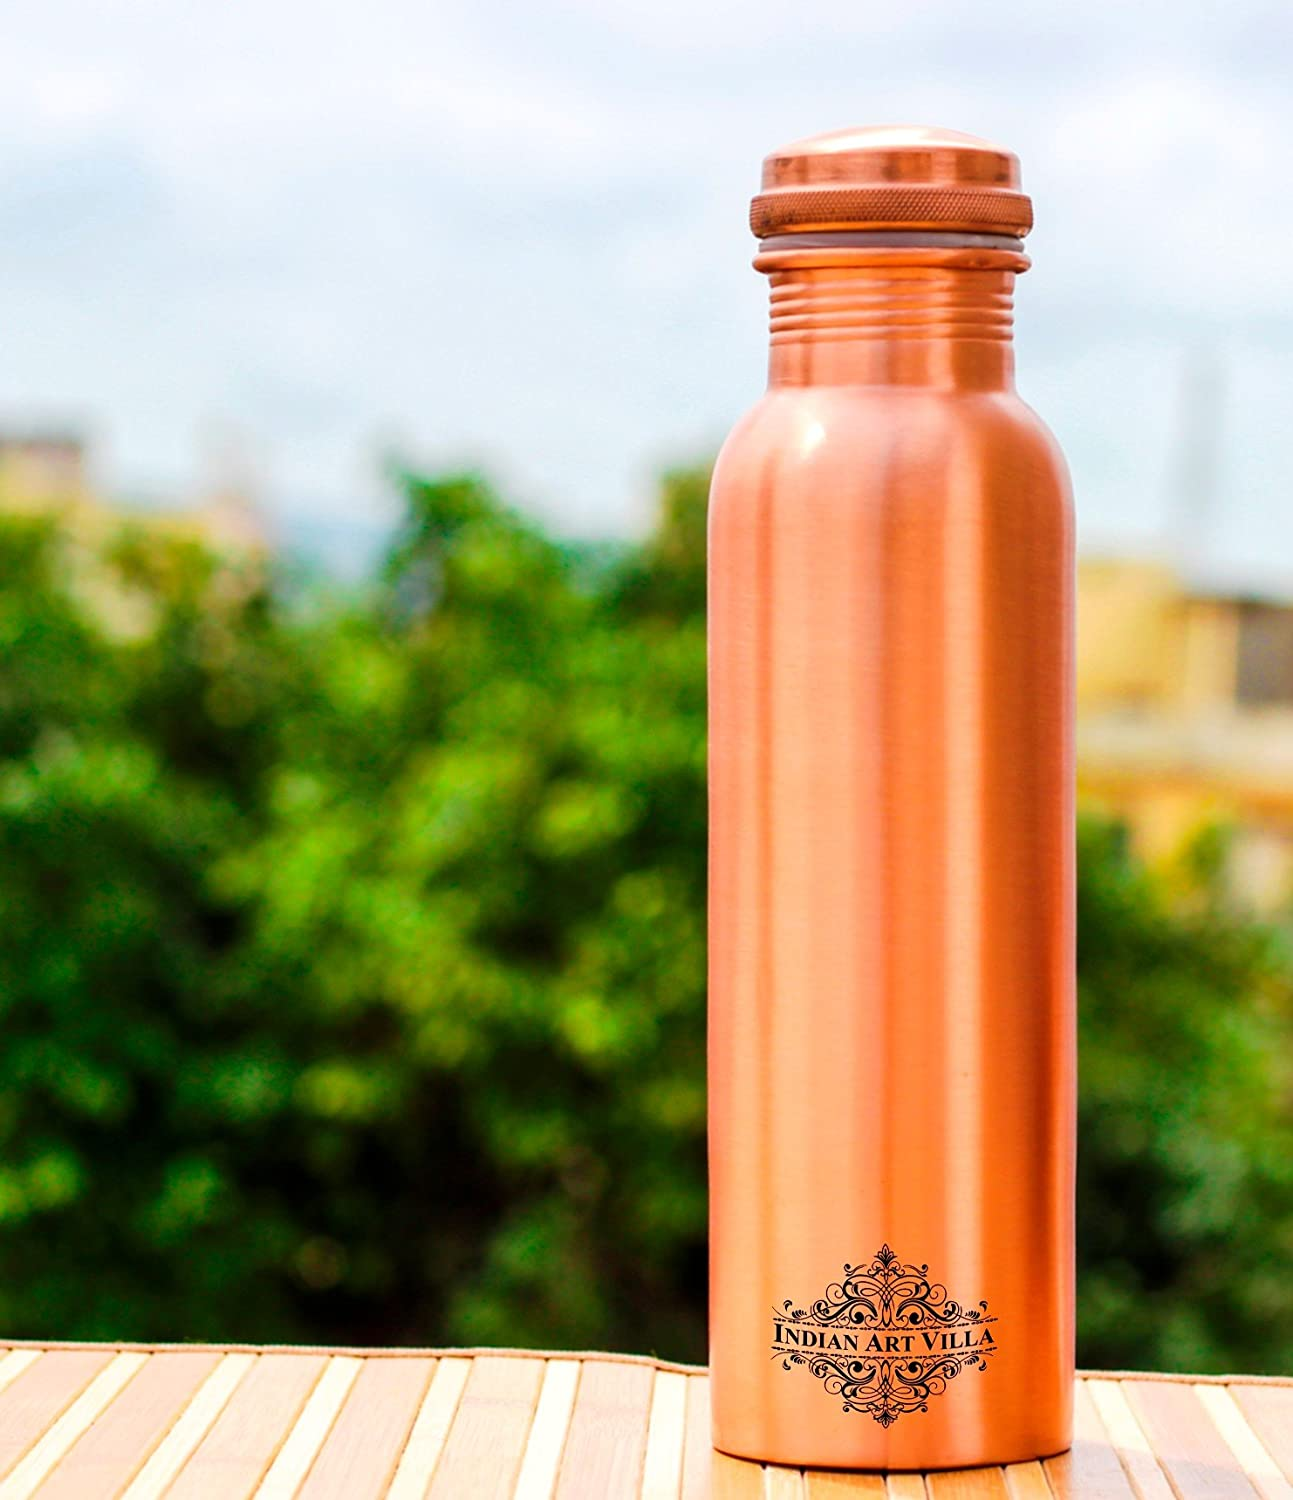 Upto 90% OFF on Indian Art Villa Copper Products